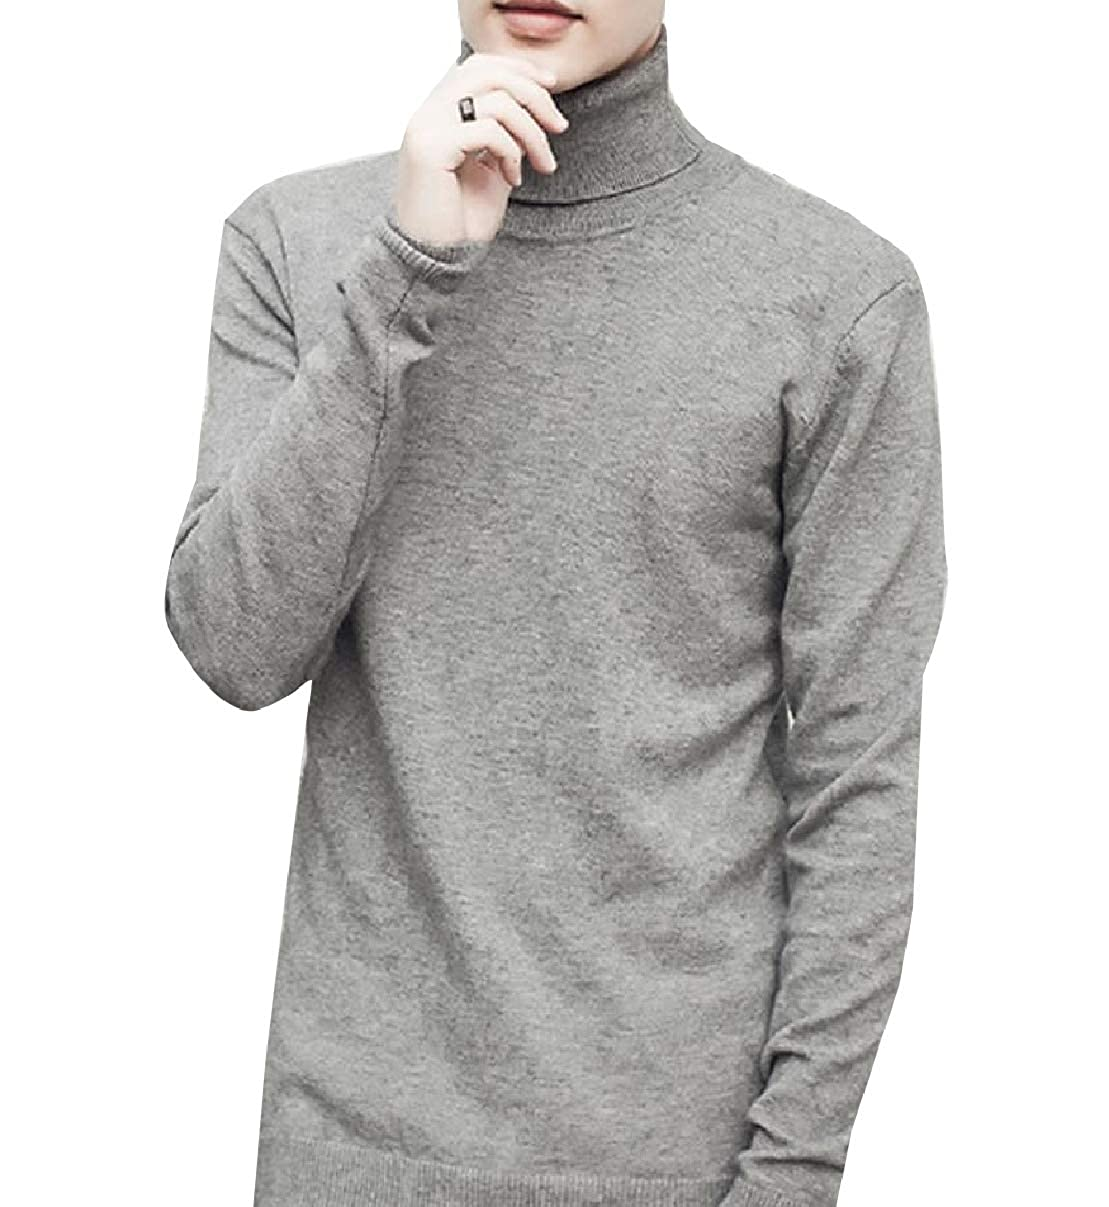 RDHOPE-Men Plus-Size Thermal Fitted Knit Solid Turtleneck Sweater Top